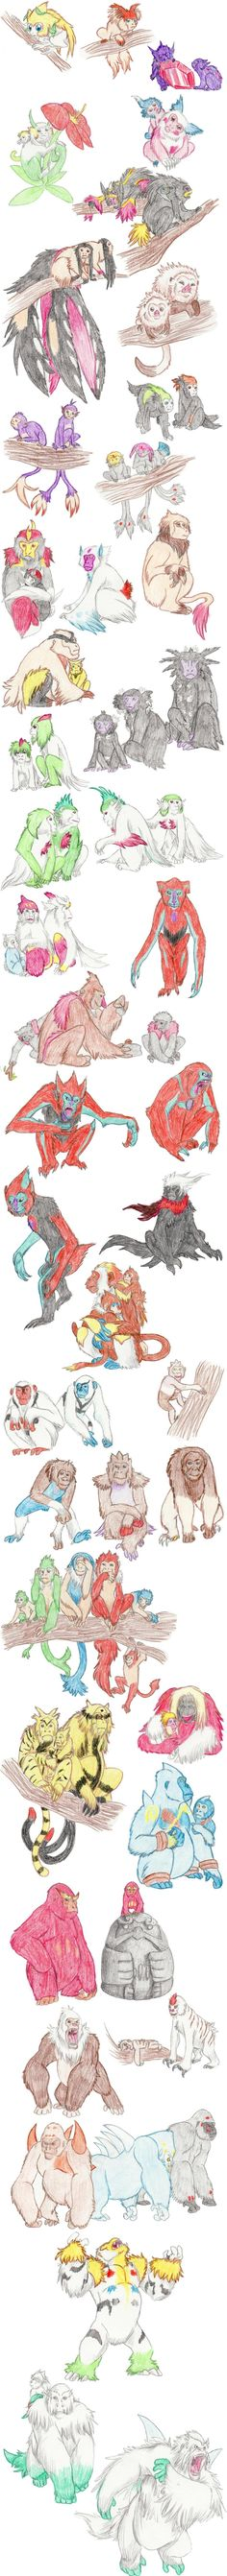 Primate Pokemon by DragonlordRynn on DeviantArt Pokemon Pins, Pokemon Memes, Pokemon Fan Art, My Pokemon, Pokemon Na Vida Real, Pokemon In Real Life, Deviantart Pokemon, Pokemon Breeds, Aliens